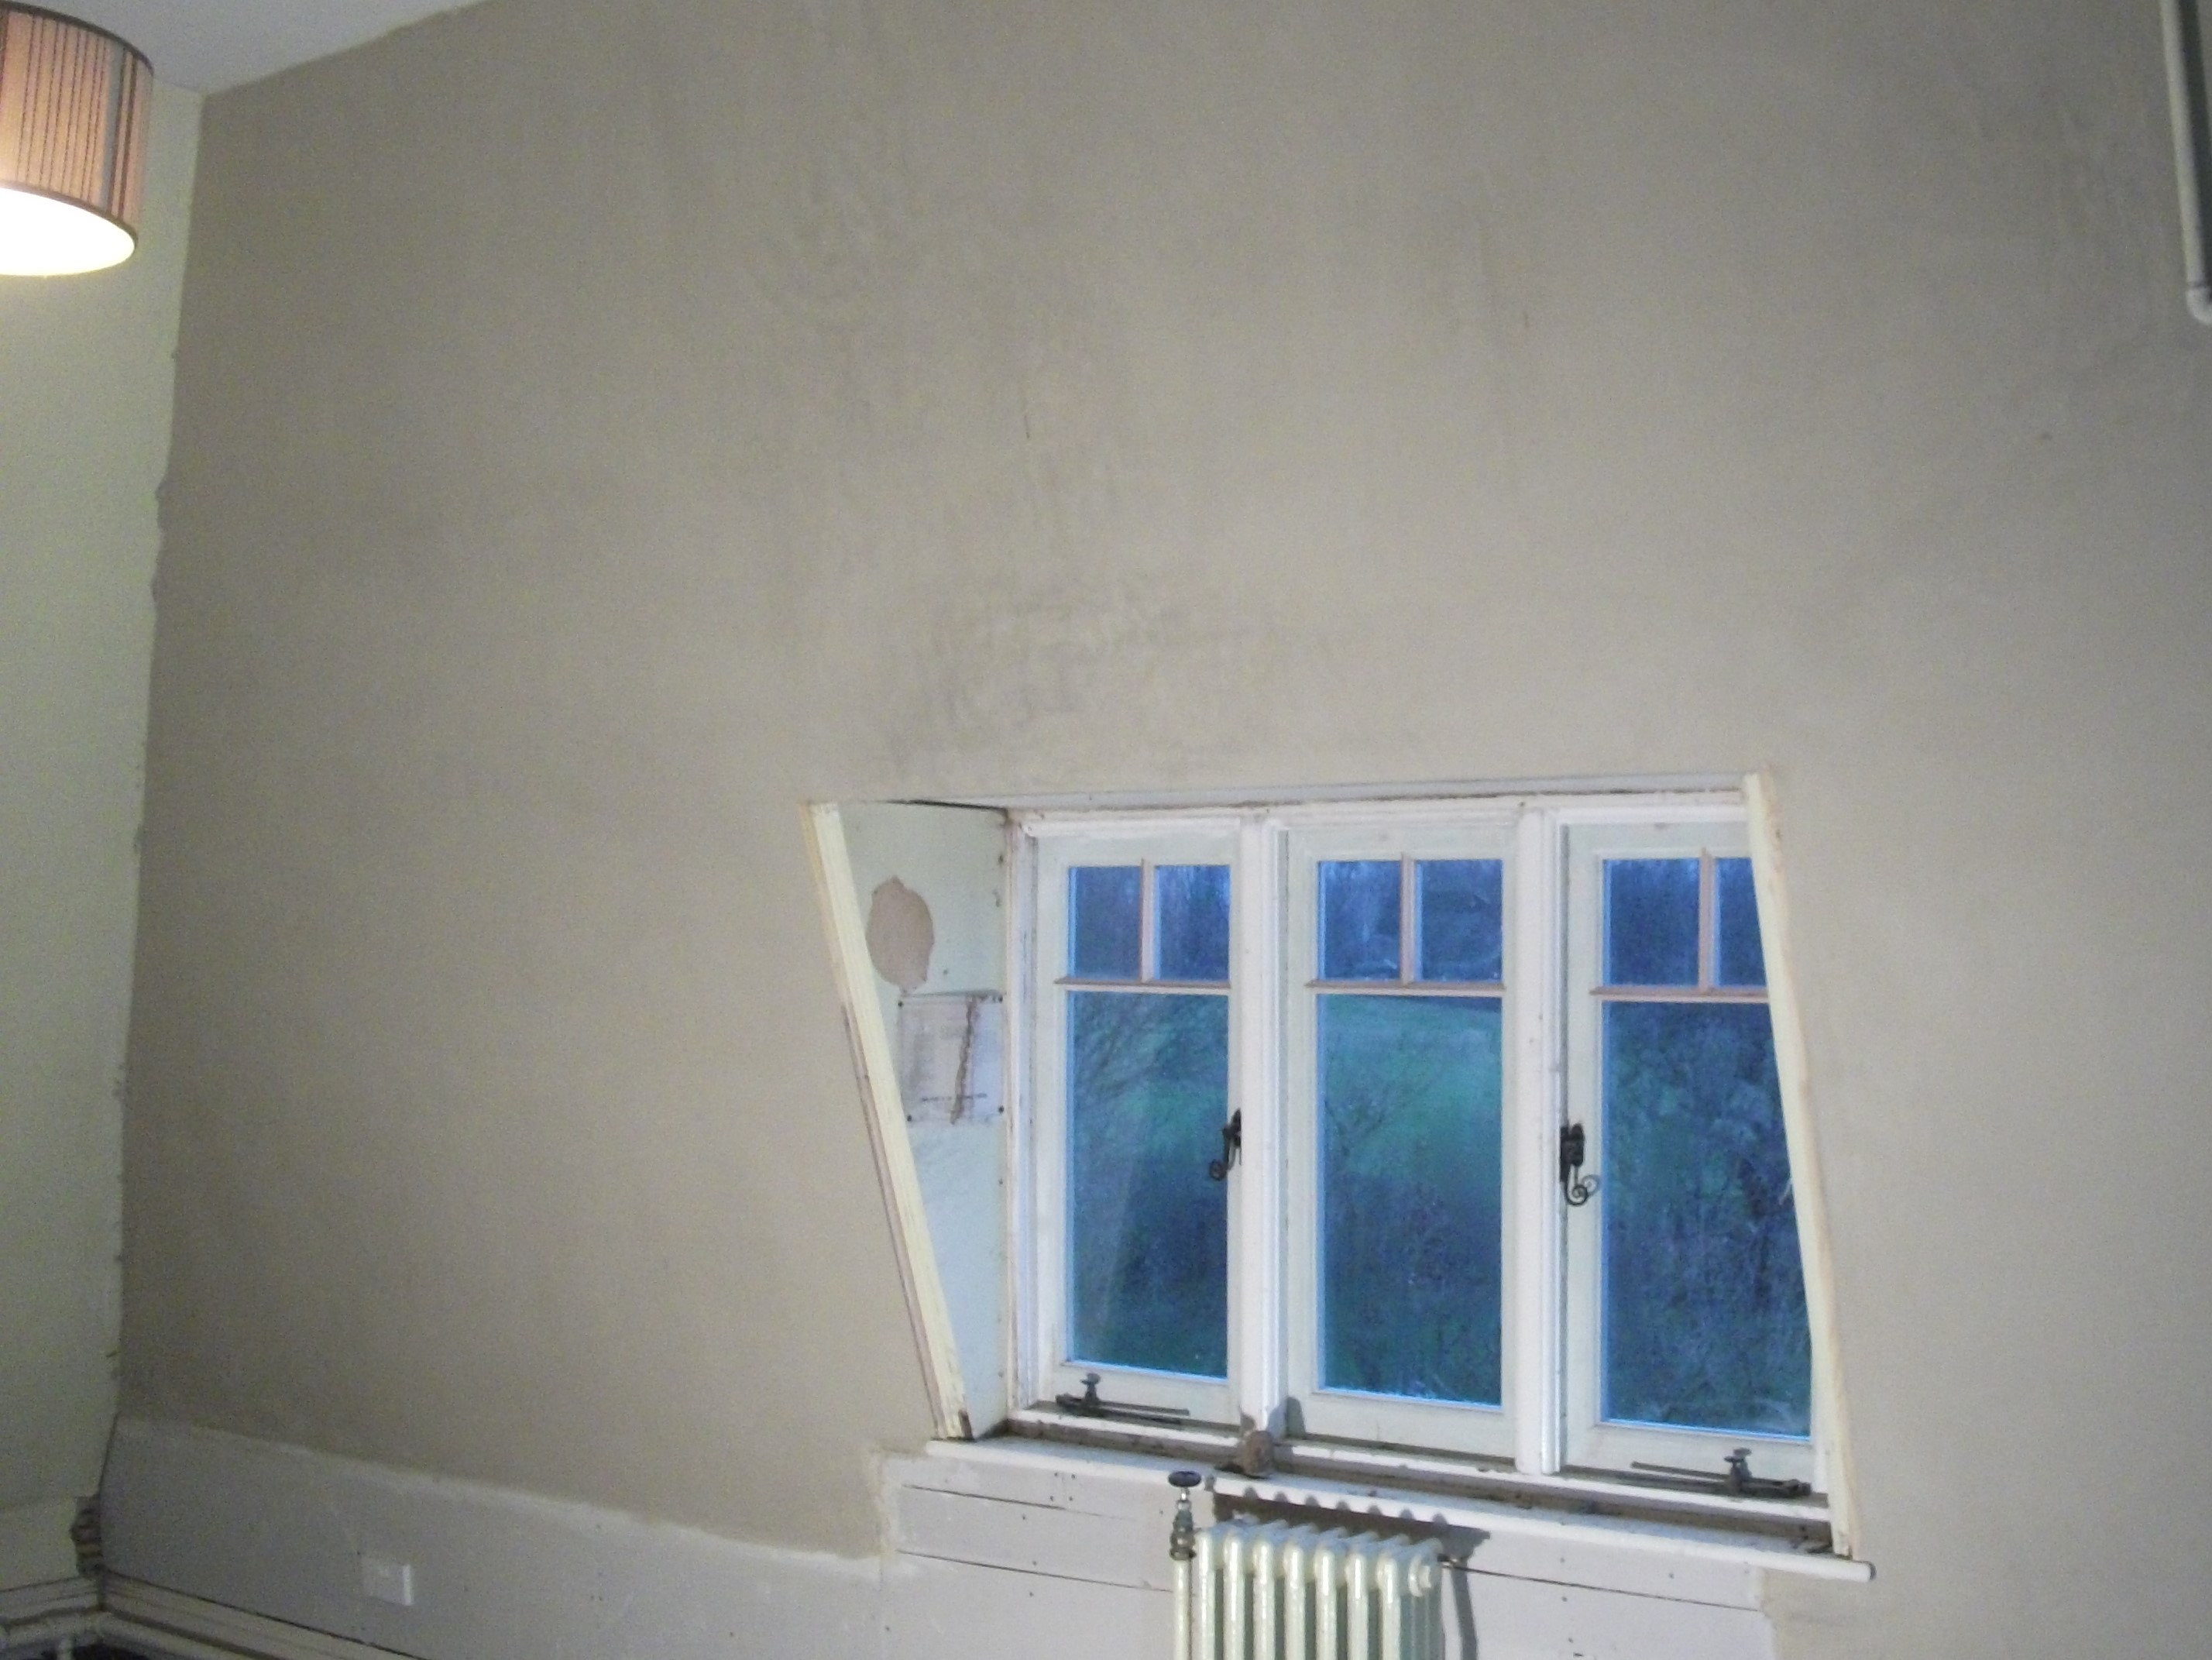 Hemp lime plastering, The lath and hemp plastered wall has been top coated with lime